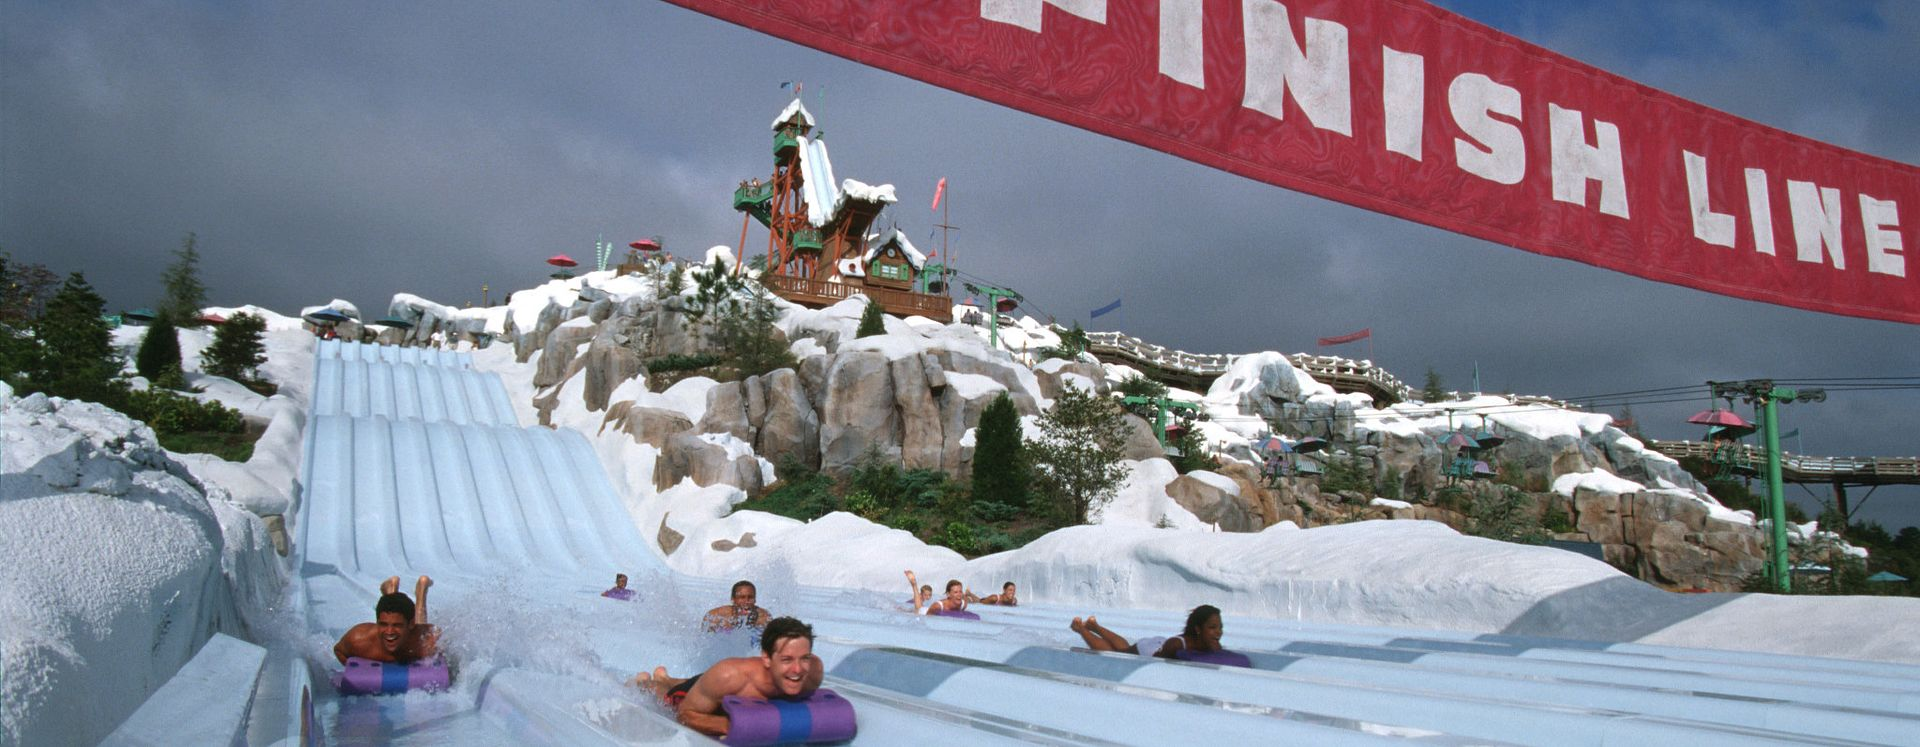 People descending on a Blizzard Beach water slide